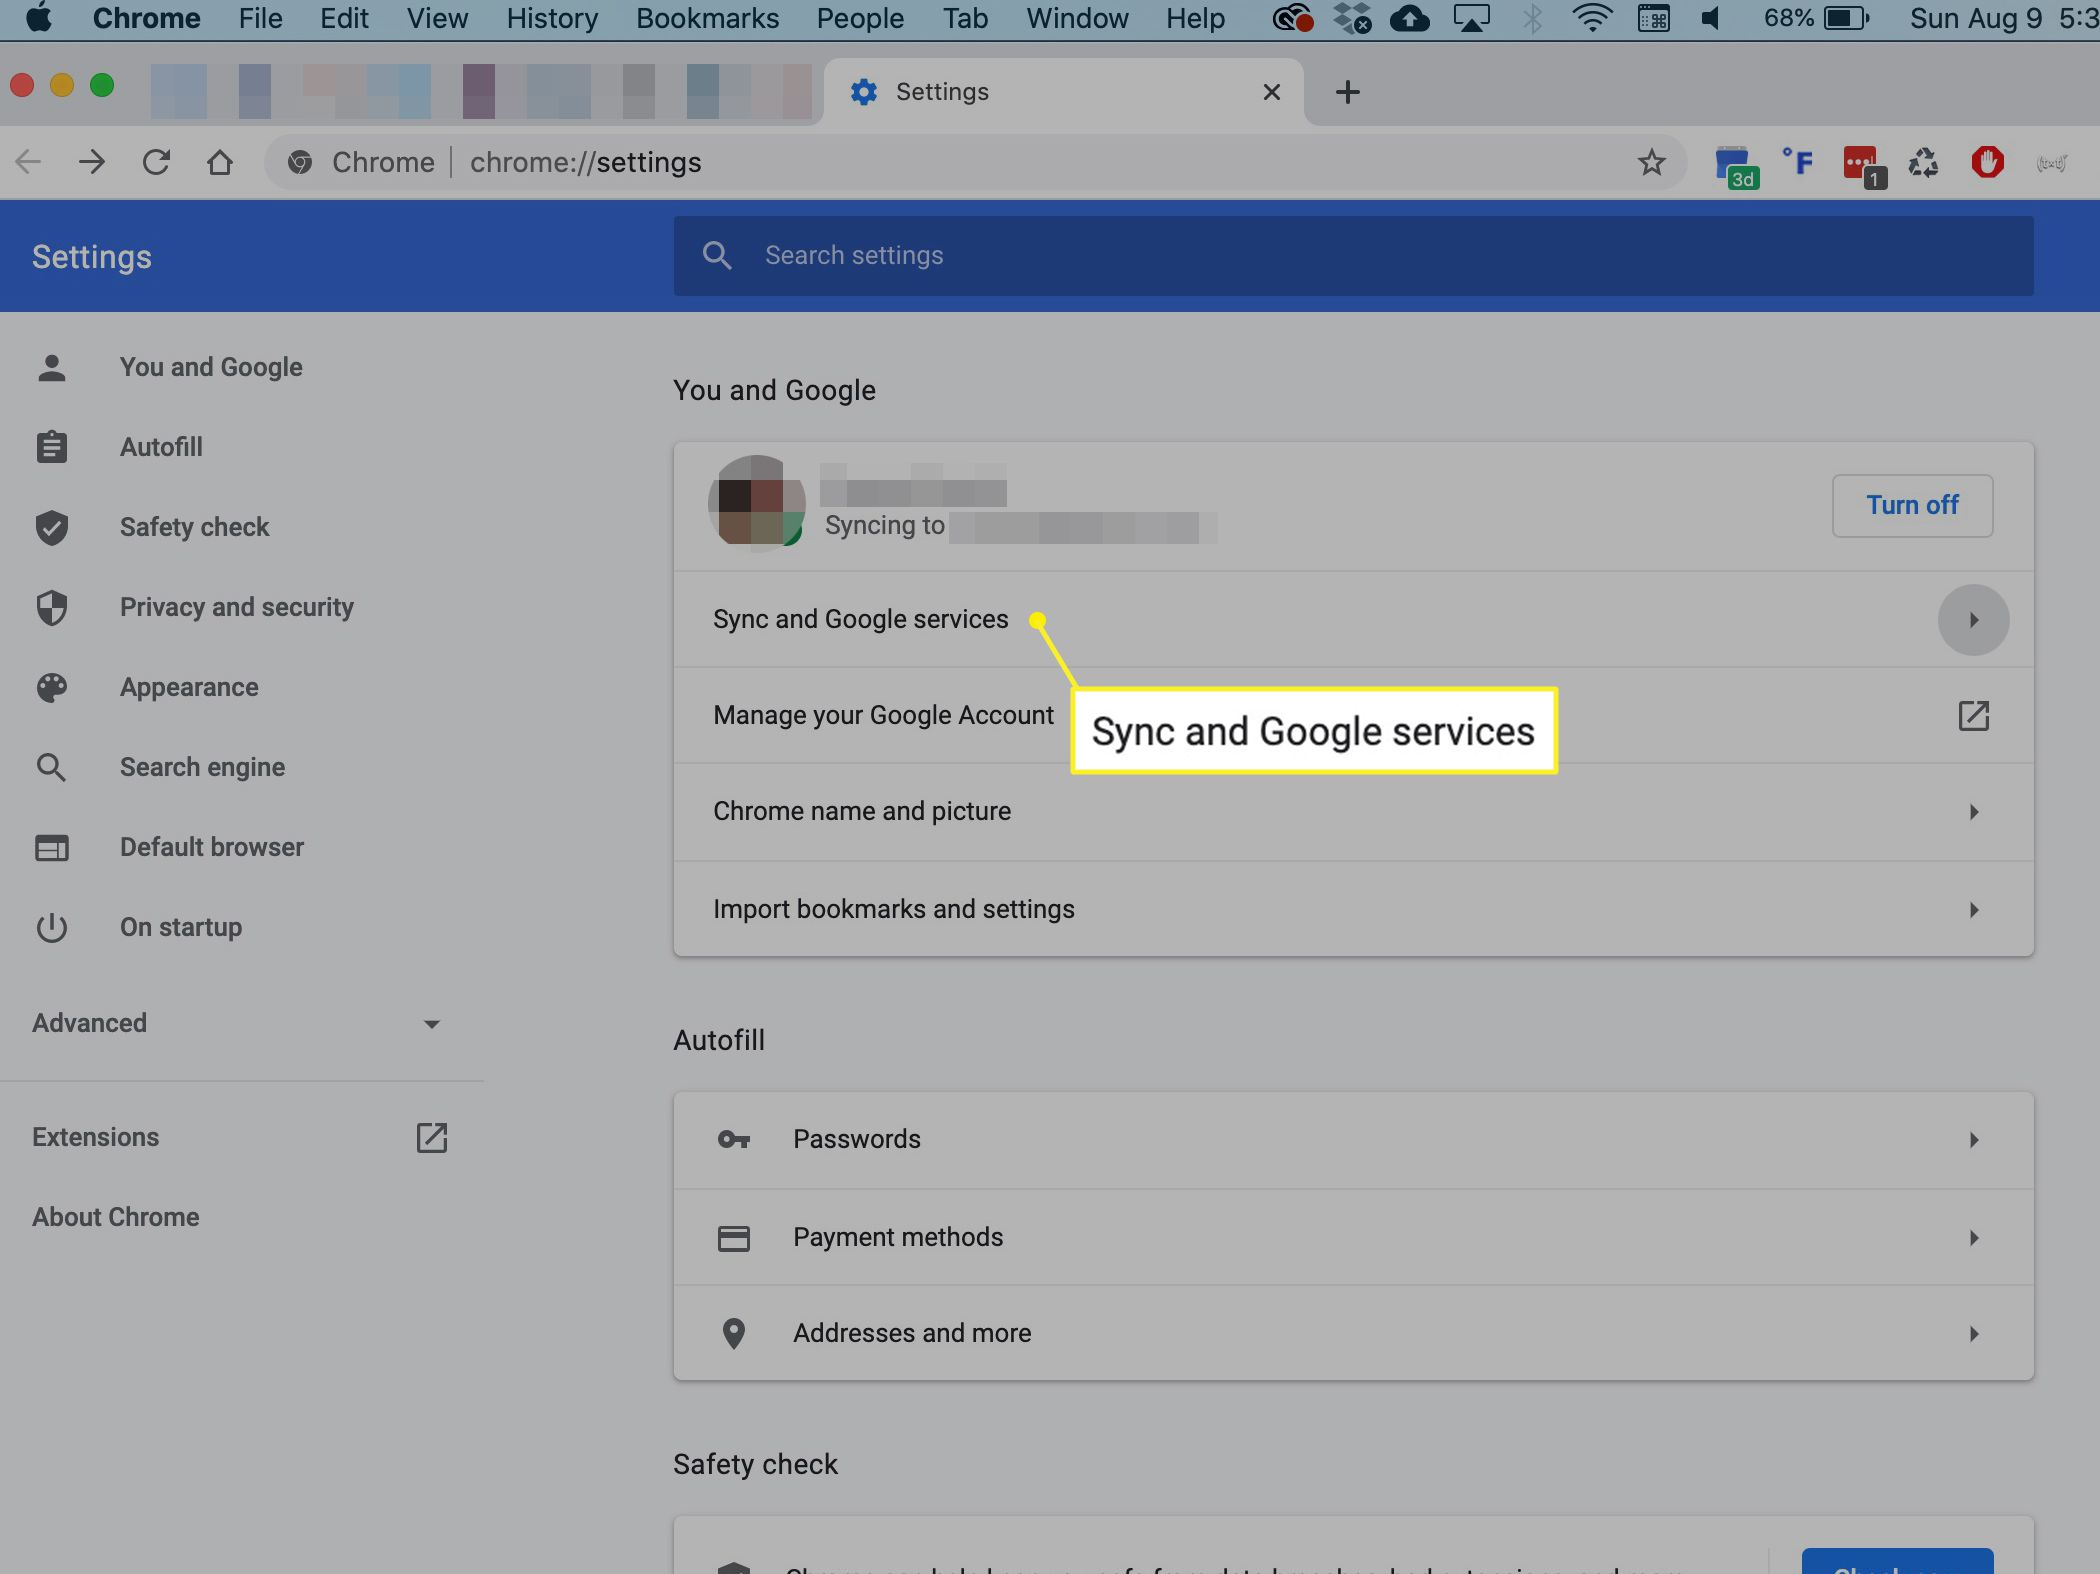 Sync and Google services